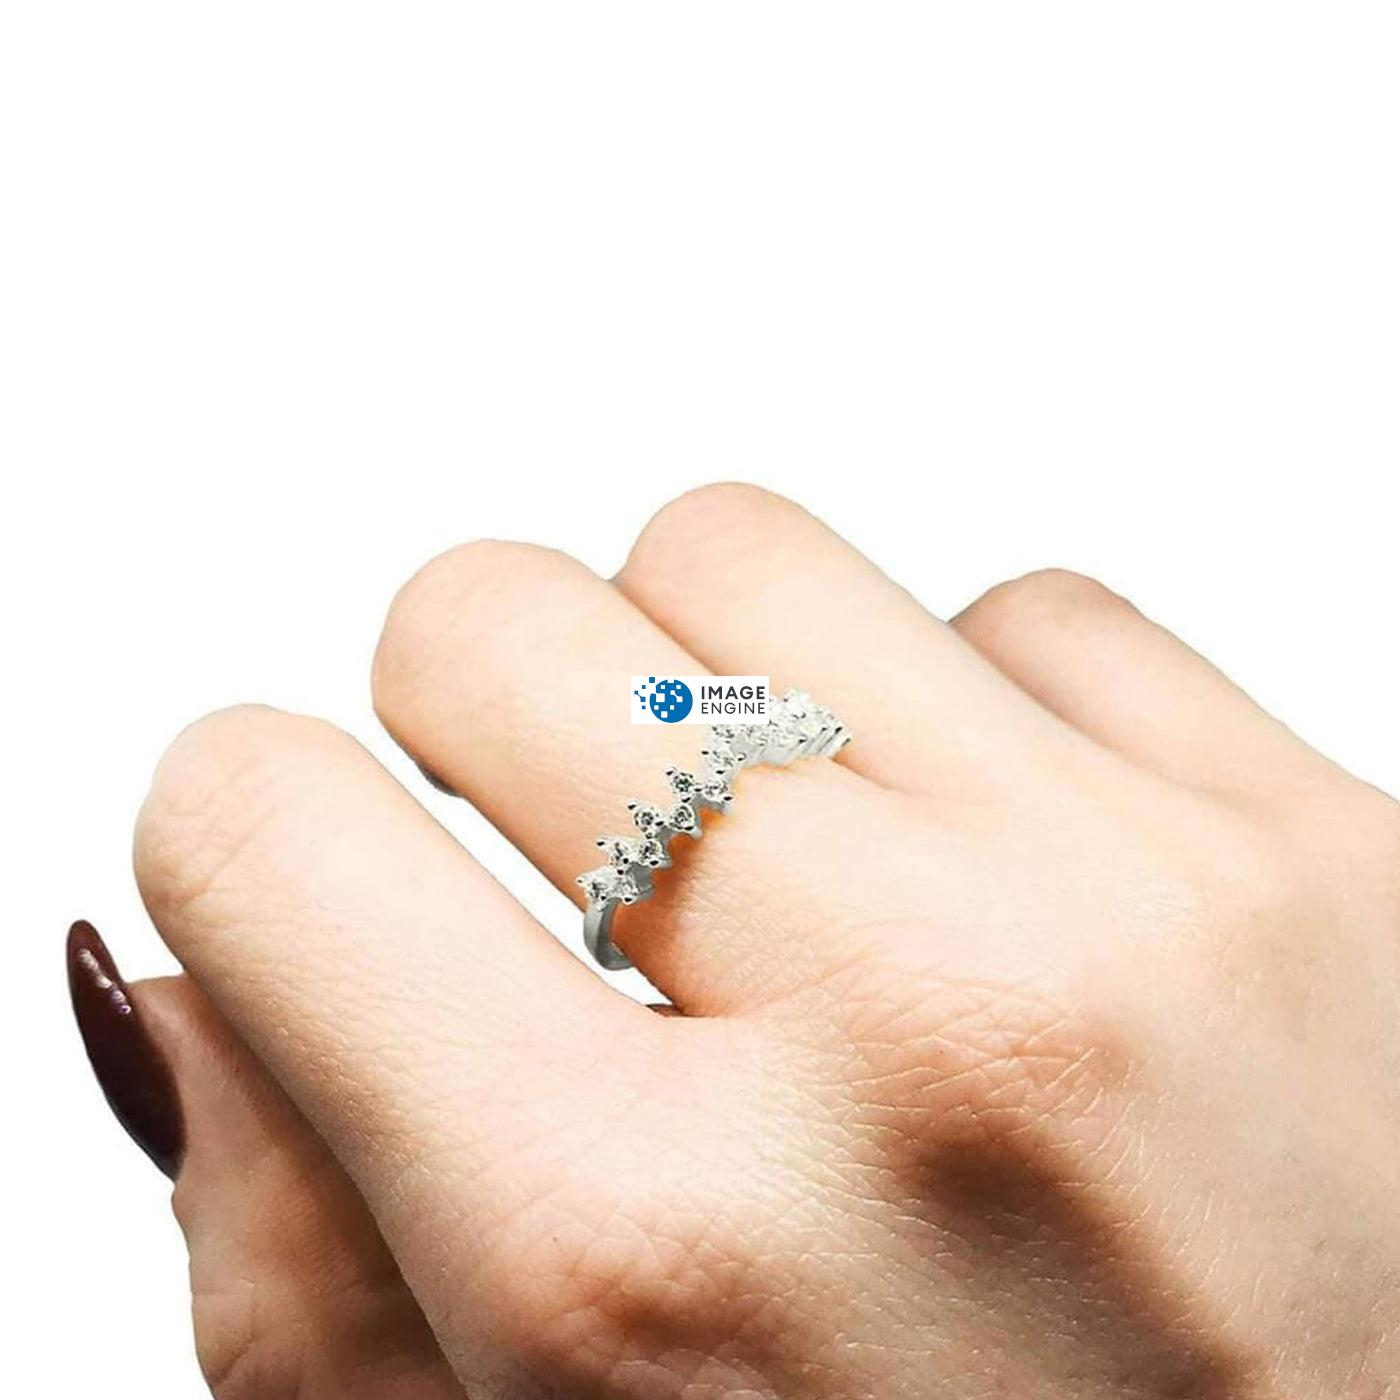 Esther Petite Cluster Ring - Wearing on Middle Finger on Higher Angle View - 925 Sterling Silver